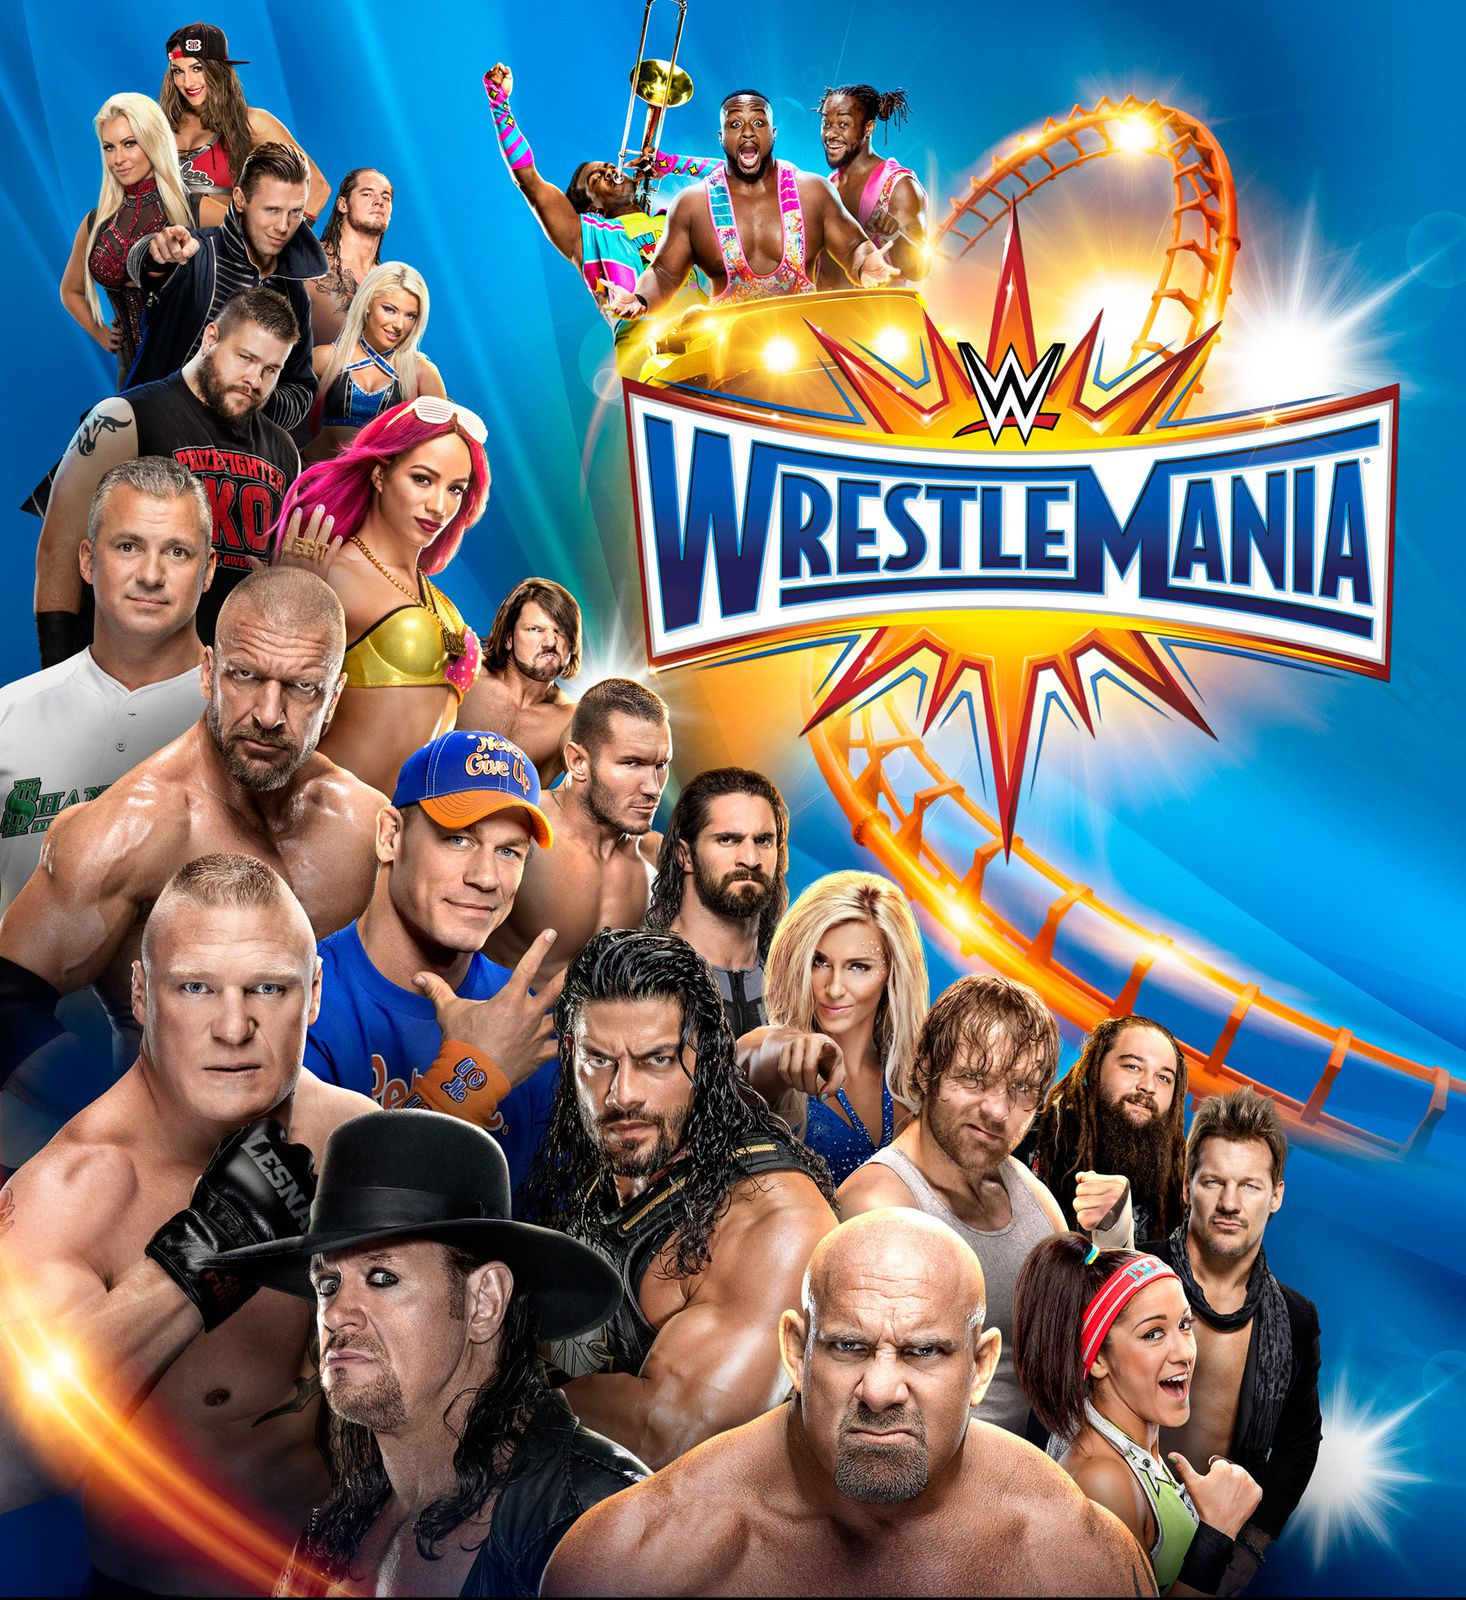 Wrestlemania en quasi direct cette nuit, avec Bill Goldberg, Brock Lesnar, The Undertaker.